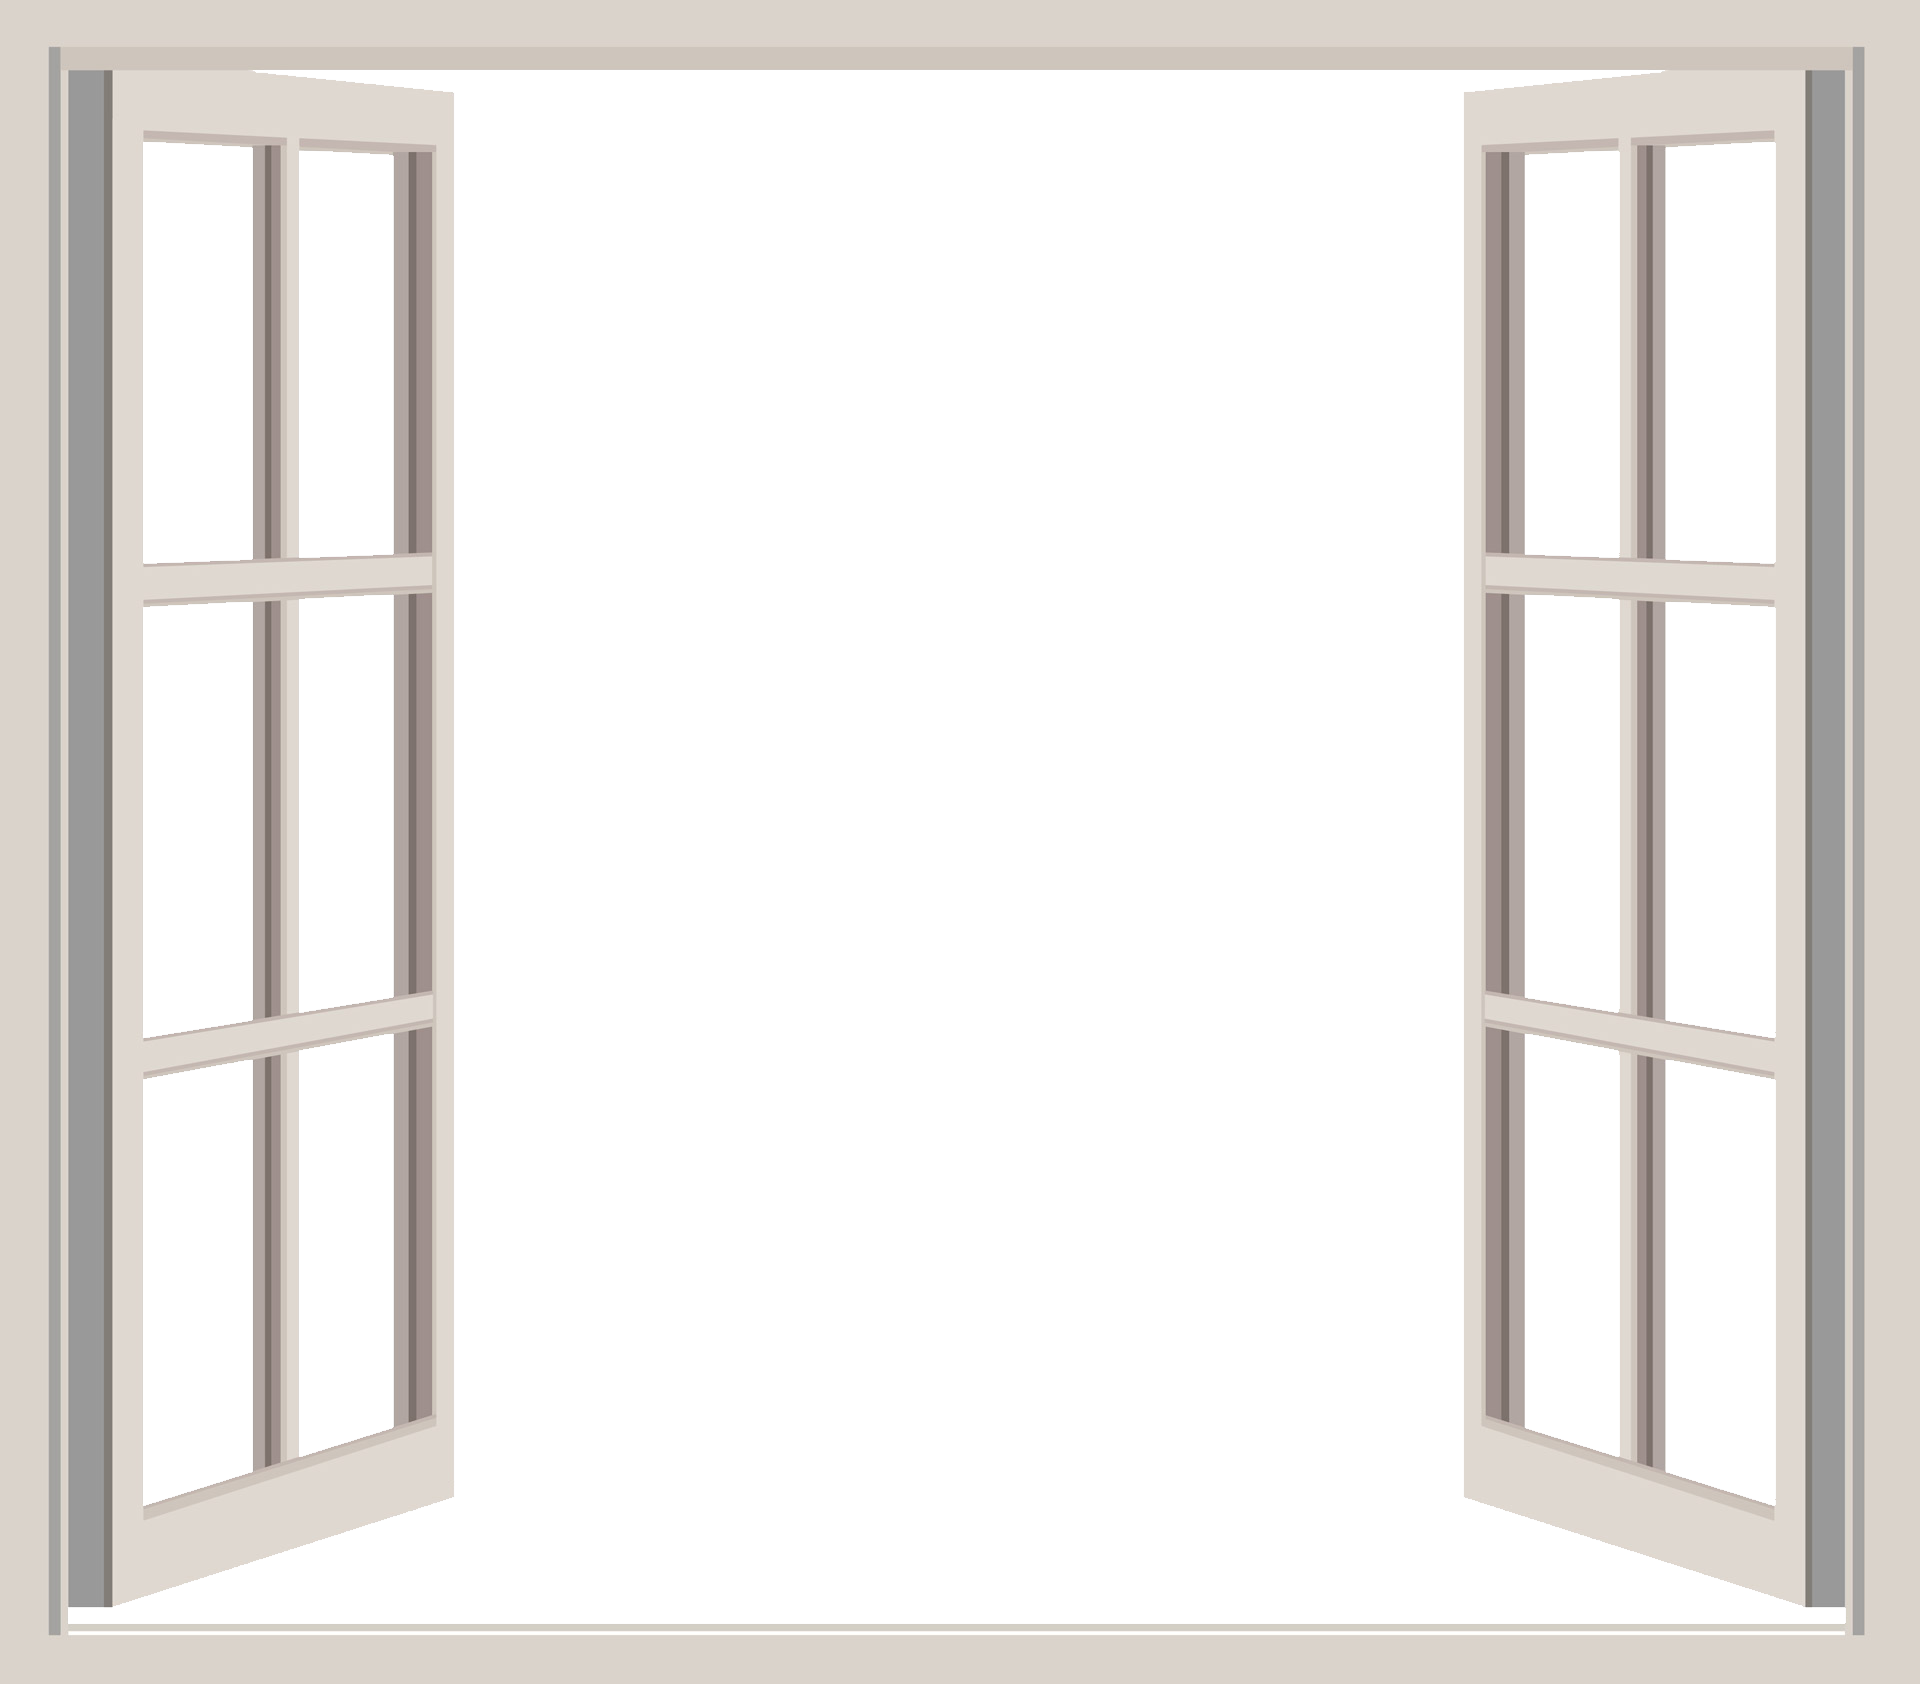 graphic transparent library windows vector opened window #109120621